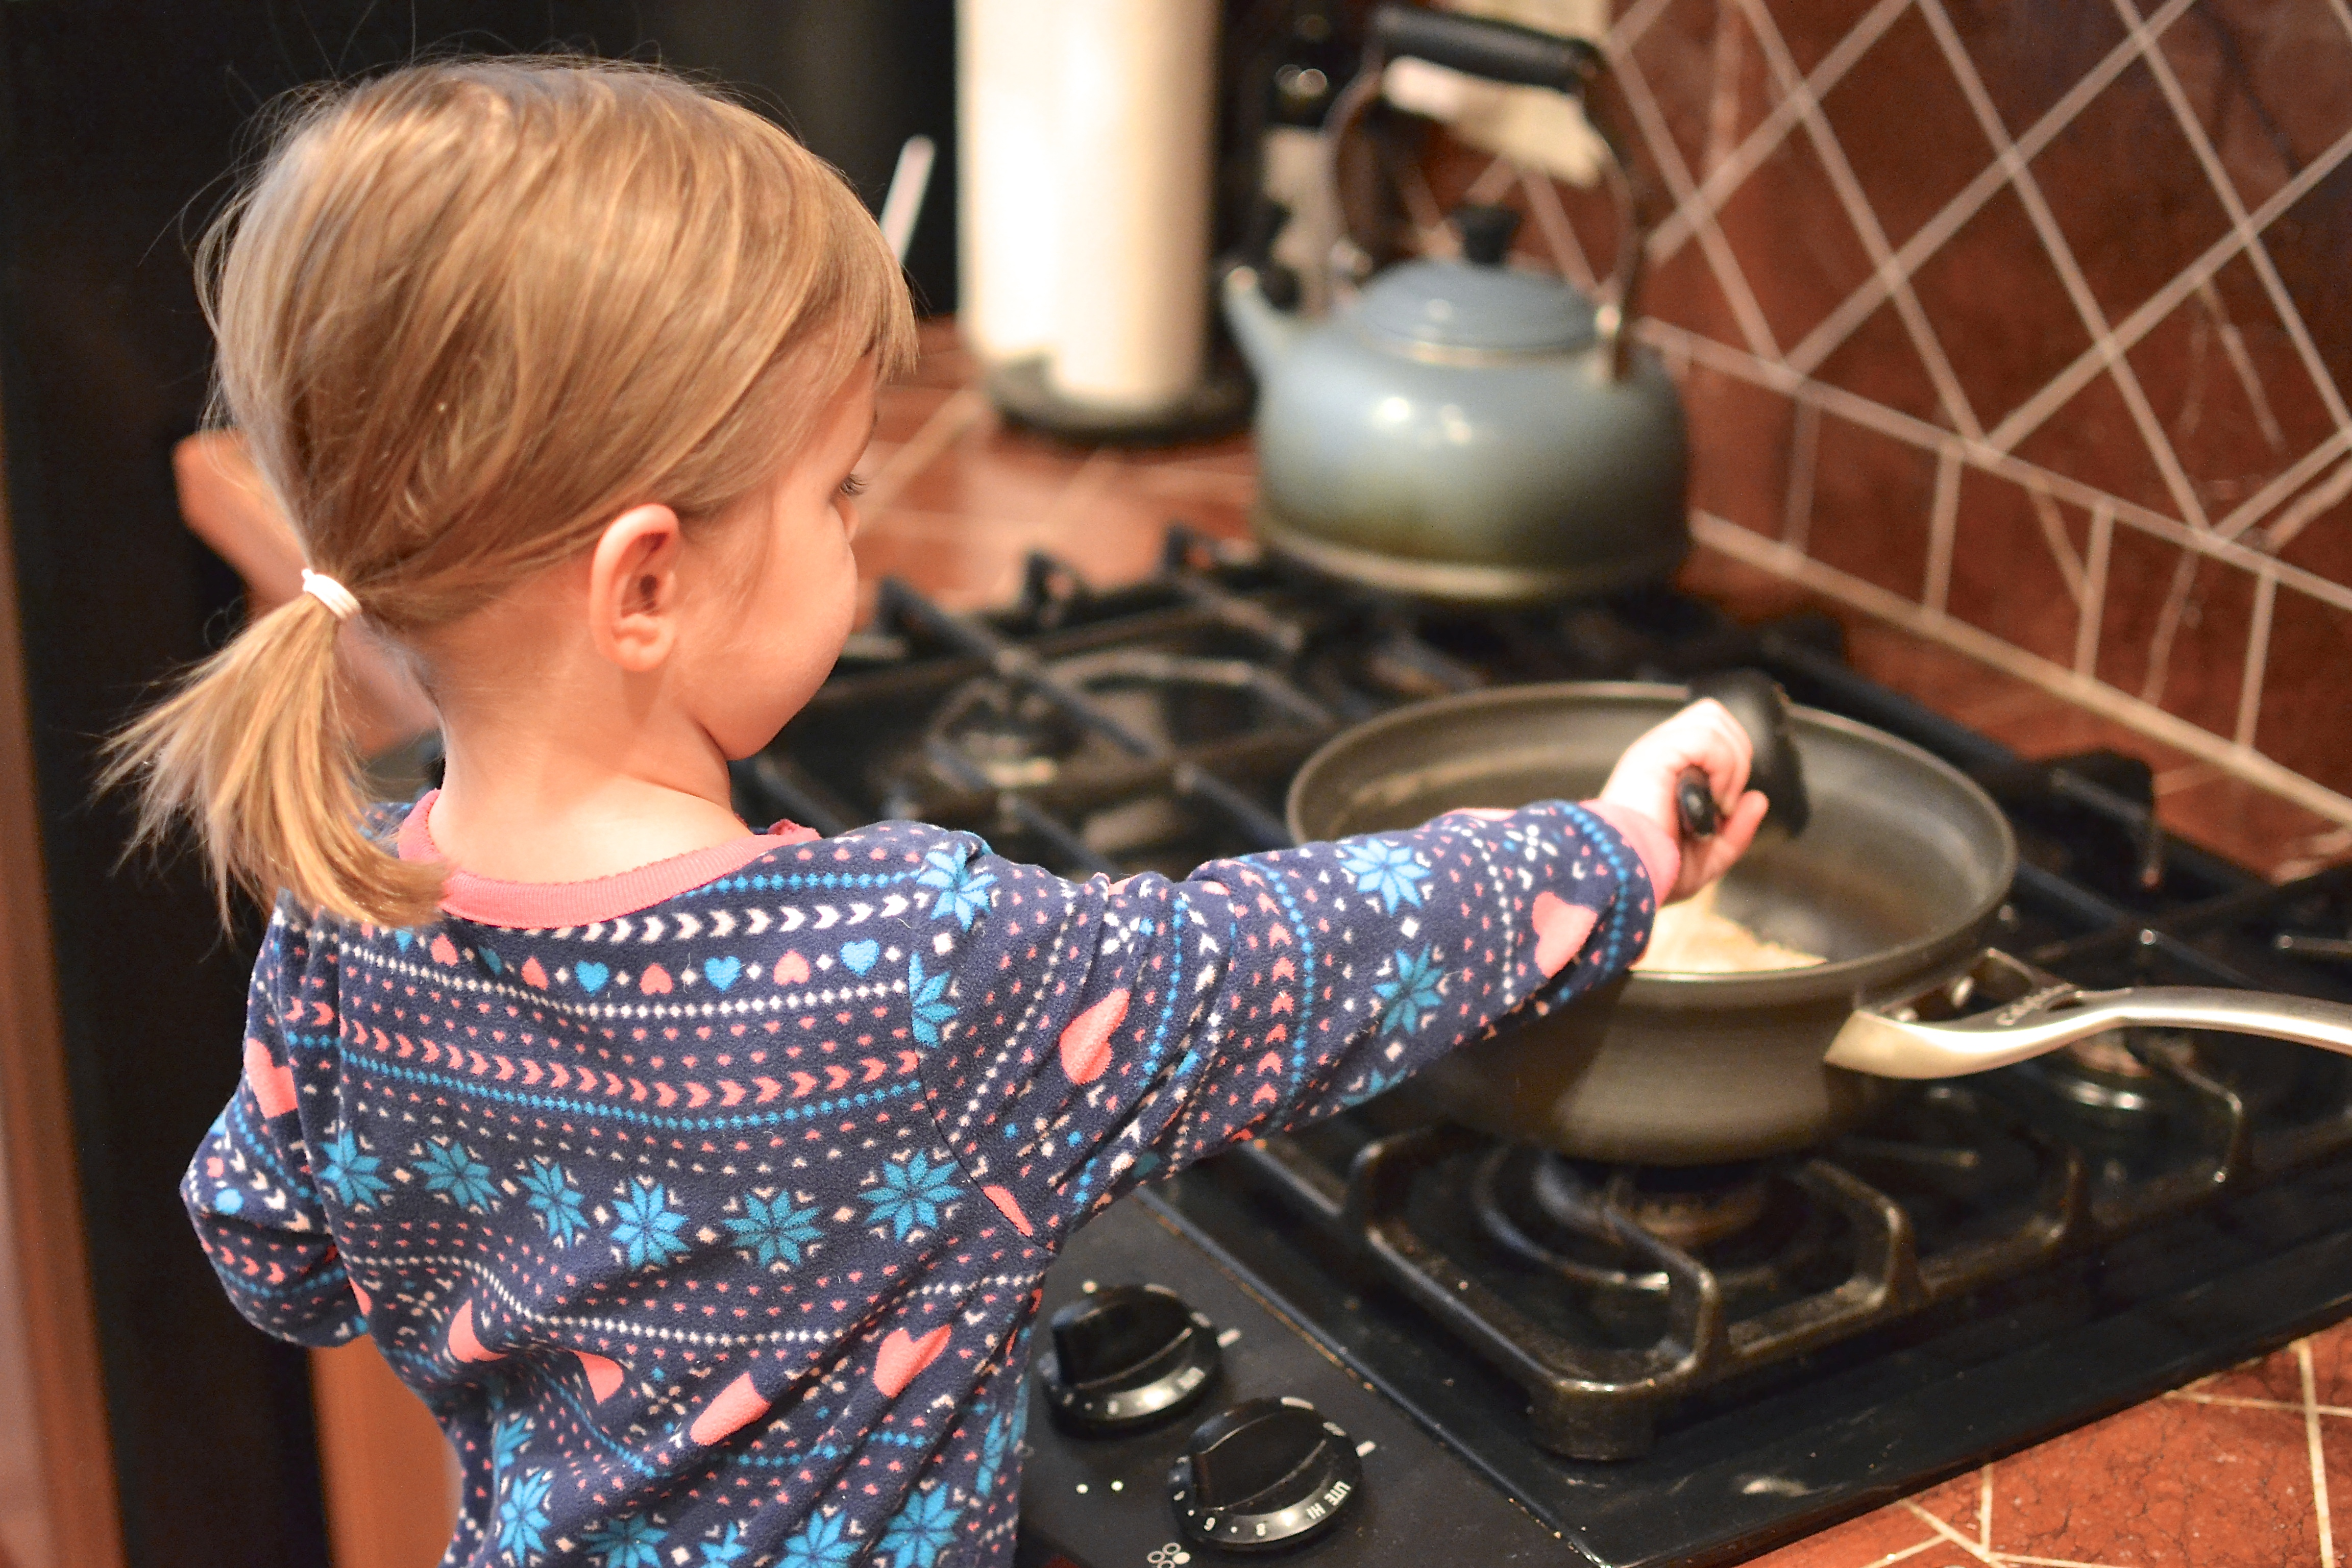 Cooking with Kids:: 5 Tips for Getting Started